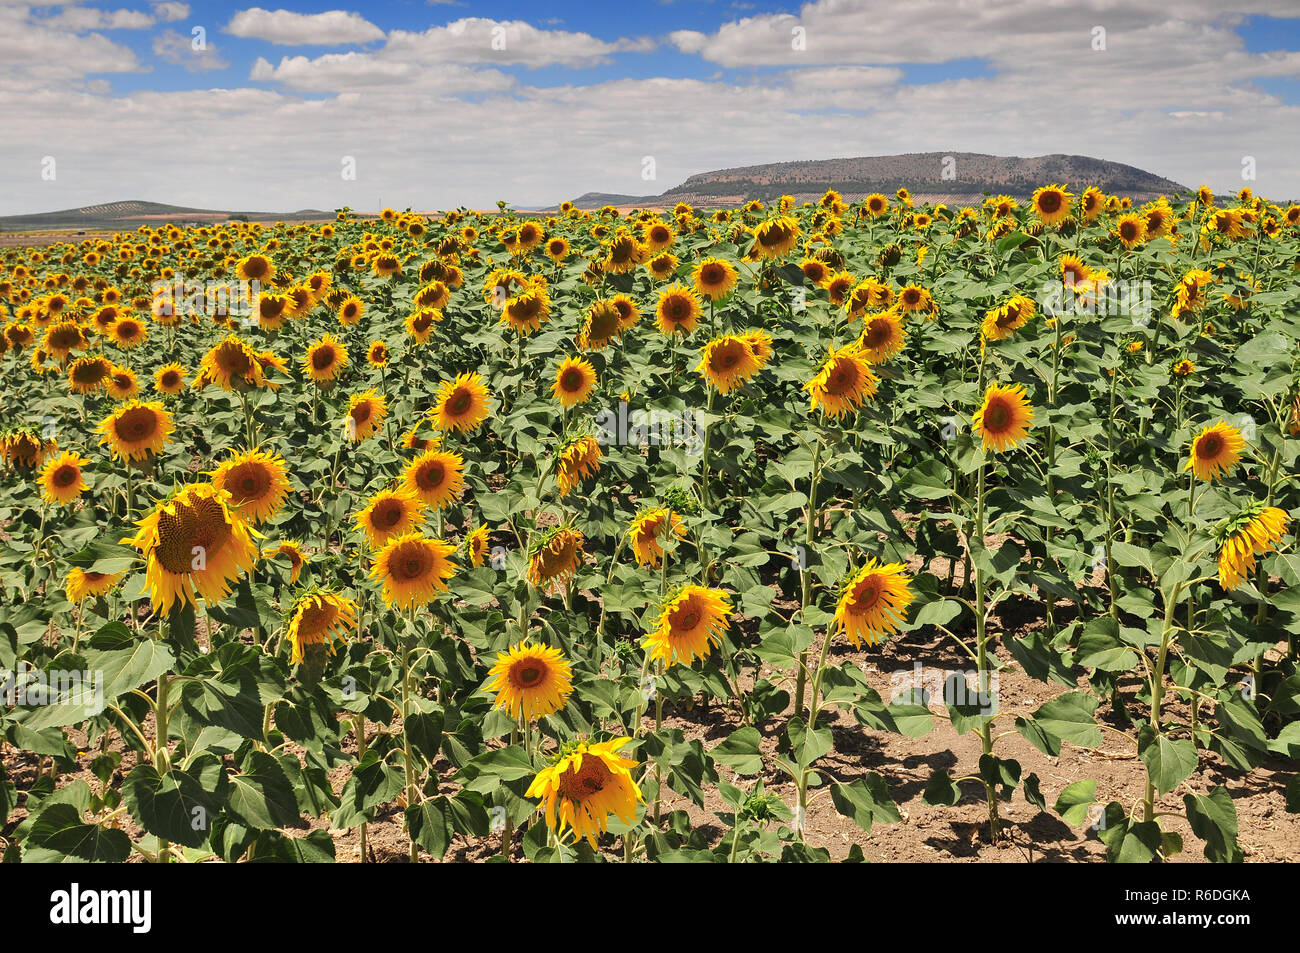 Champ de tournesol (Helianthus annuus), Costa De La Luz, Cadix Province, Andalusia, Spain Photo Stock